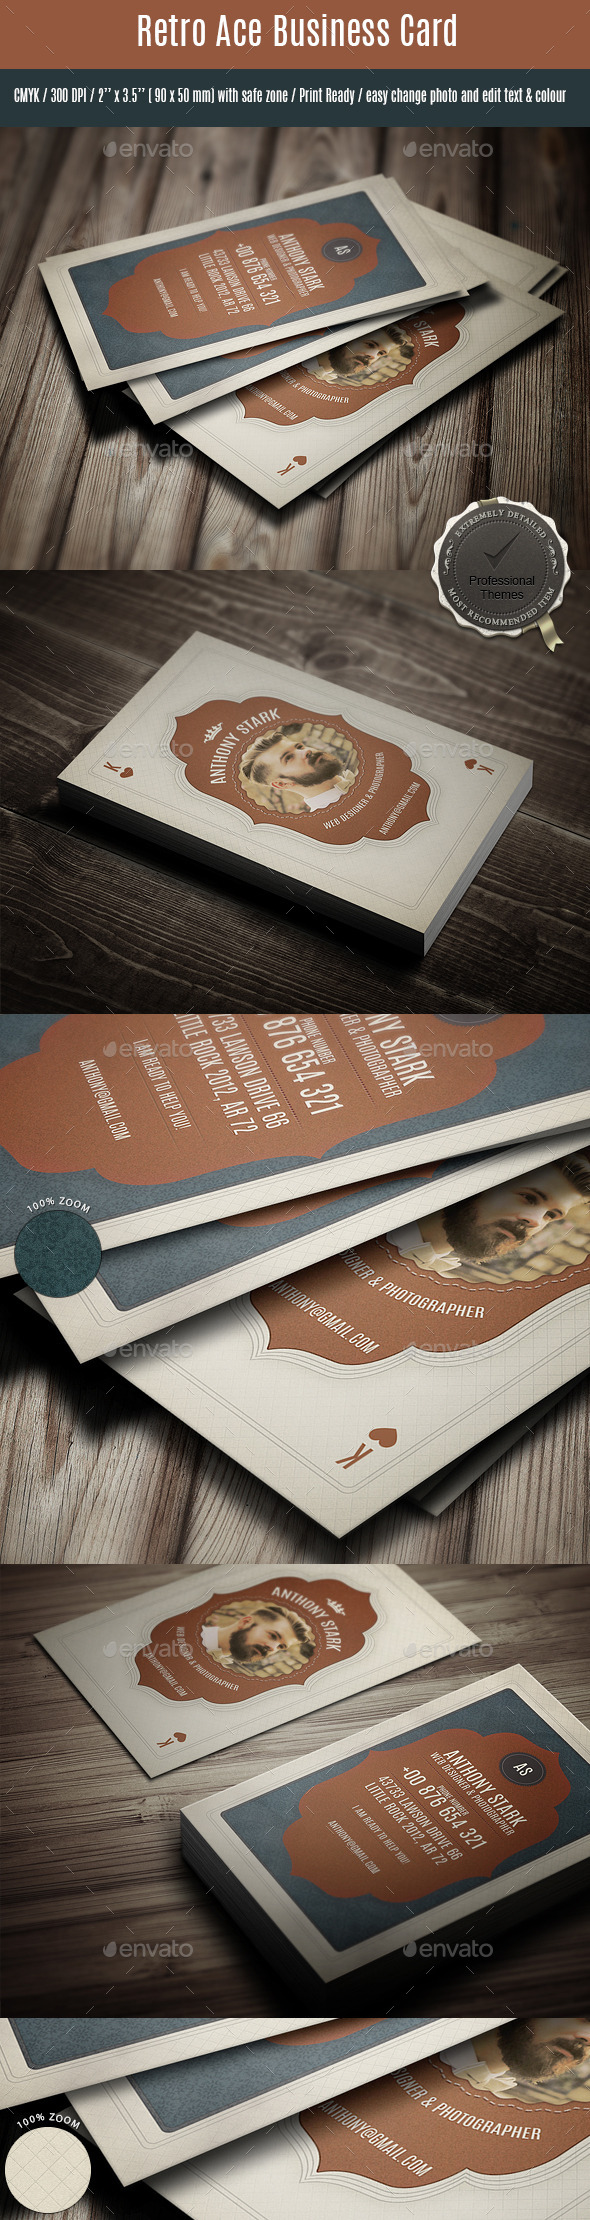 GraphicRiver Retro Ace Business Card 11169357